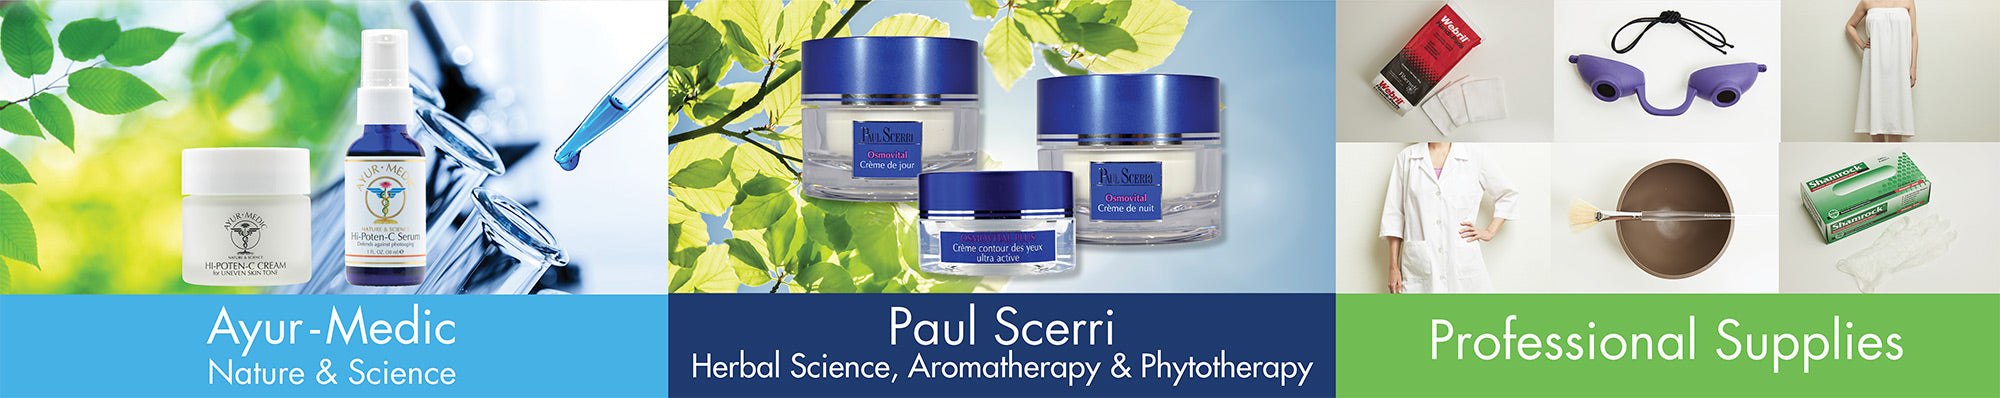 Aesthetics International products for skin care professionals